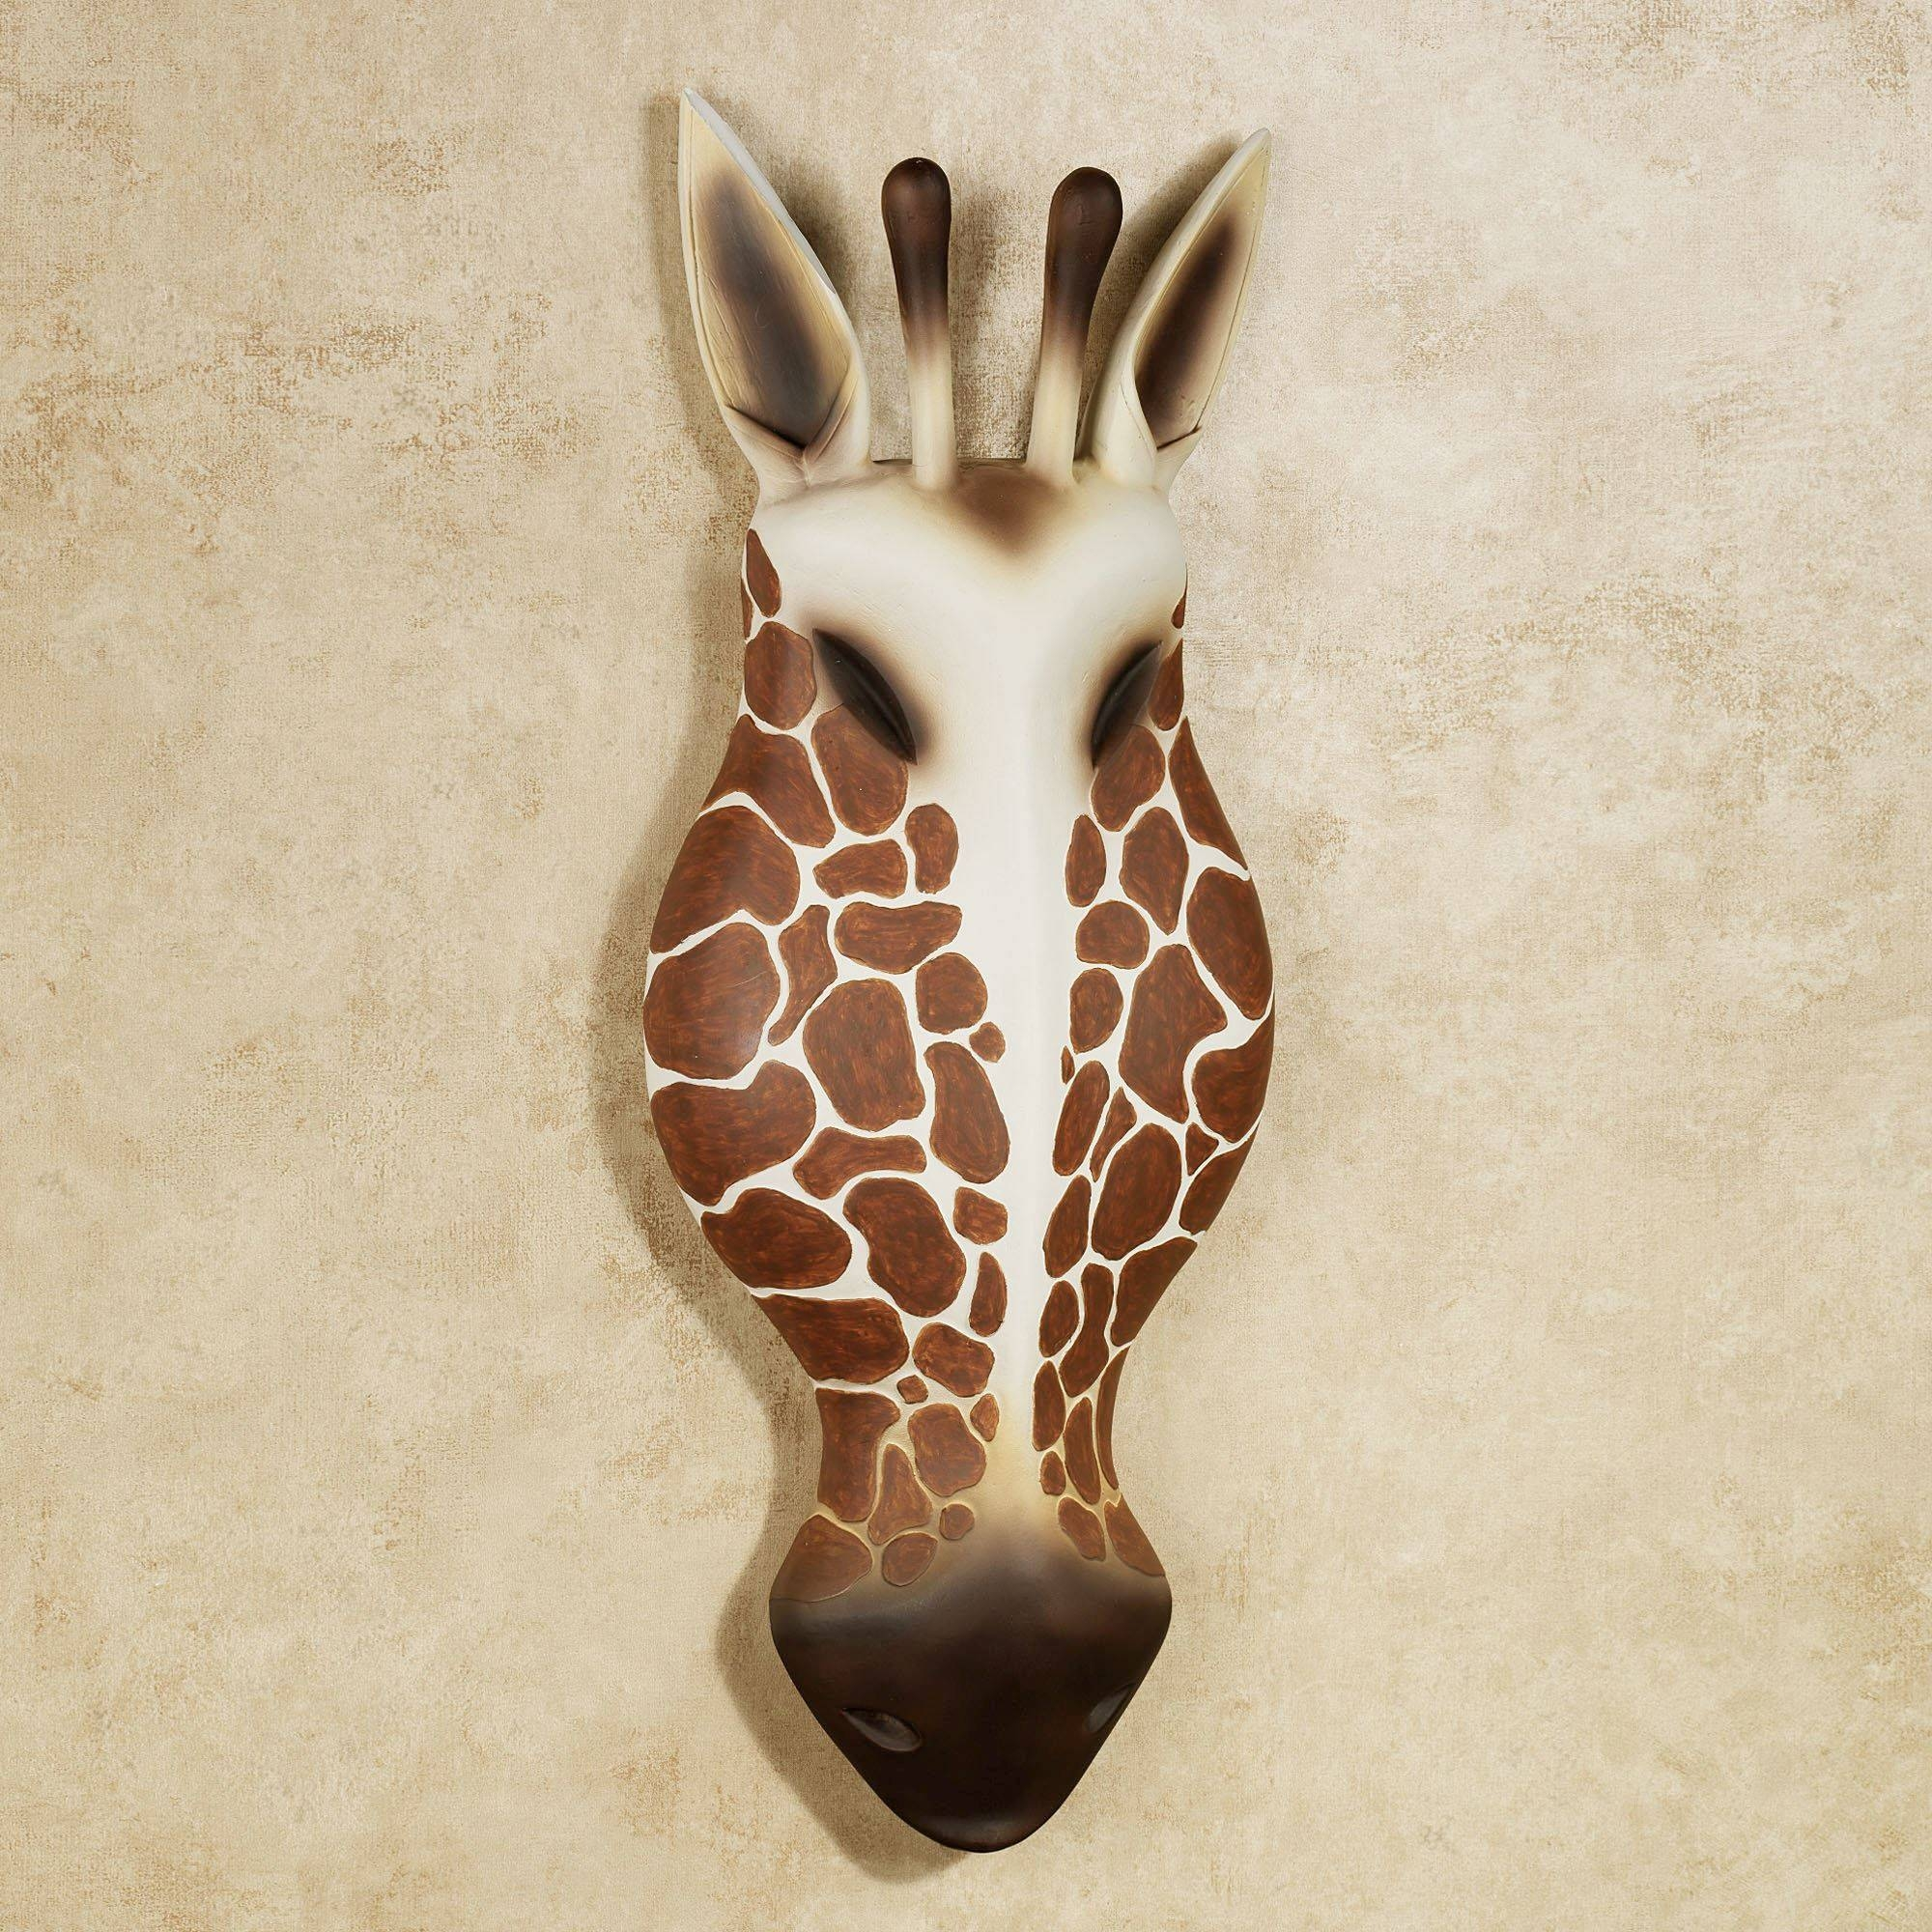 Resin Giraffe Head Wall Art Intended For Latest Giraffe Metal Wall Art (Gallery 4 of 20)